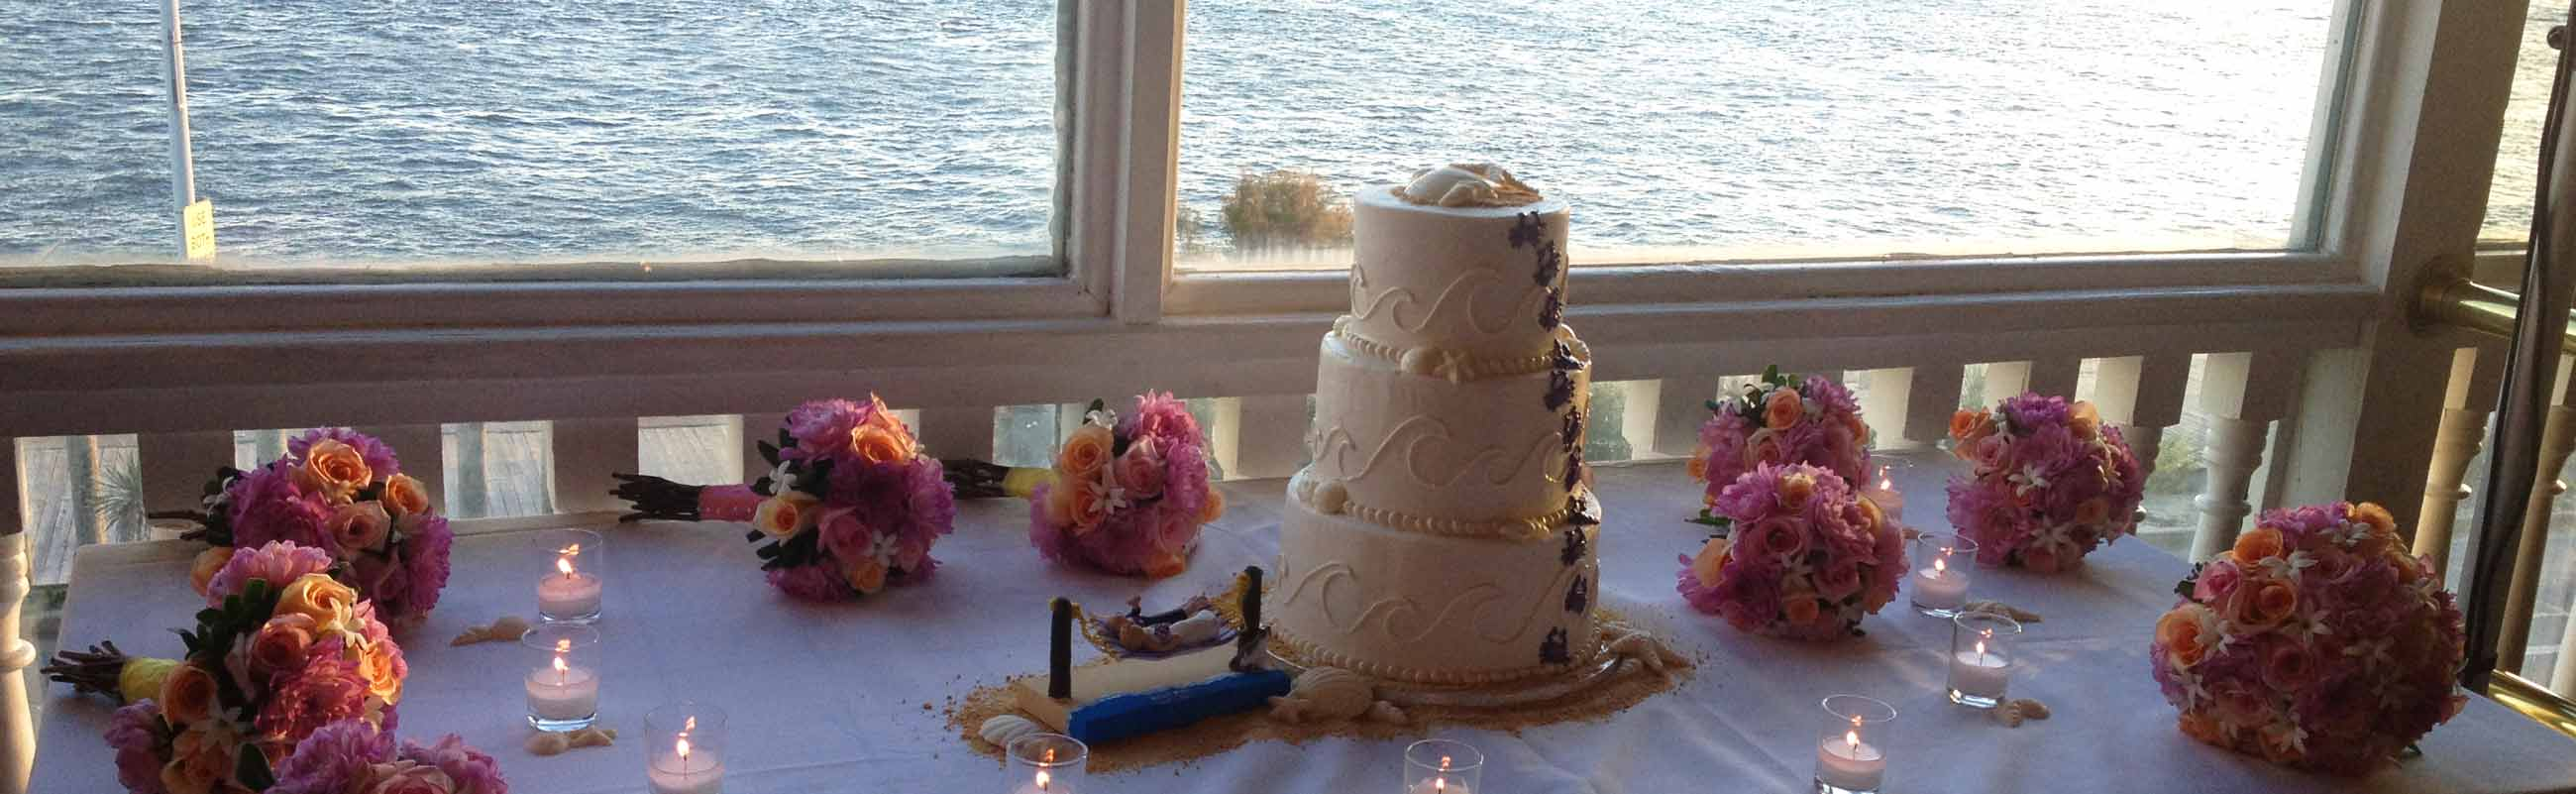 Amazing inlet and Assateague views with your wedding